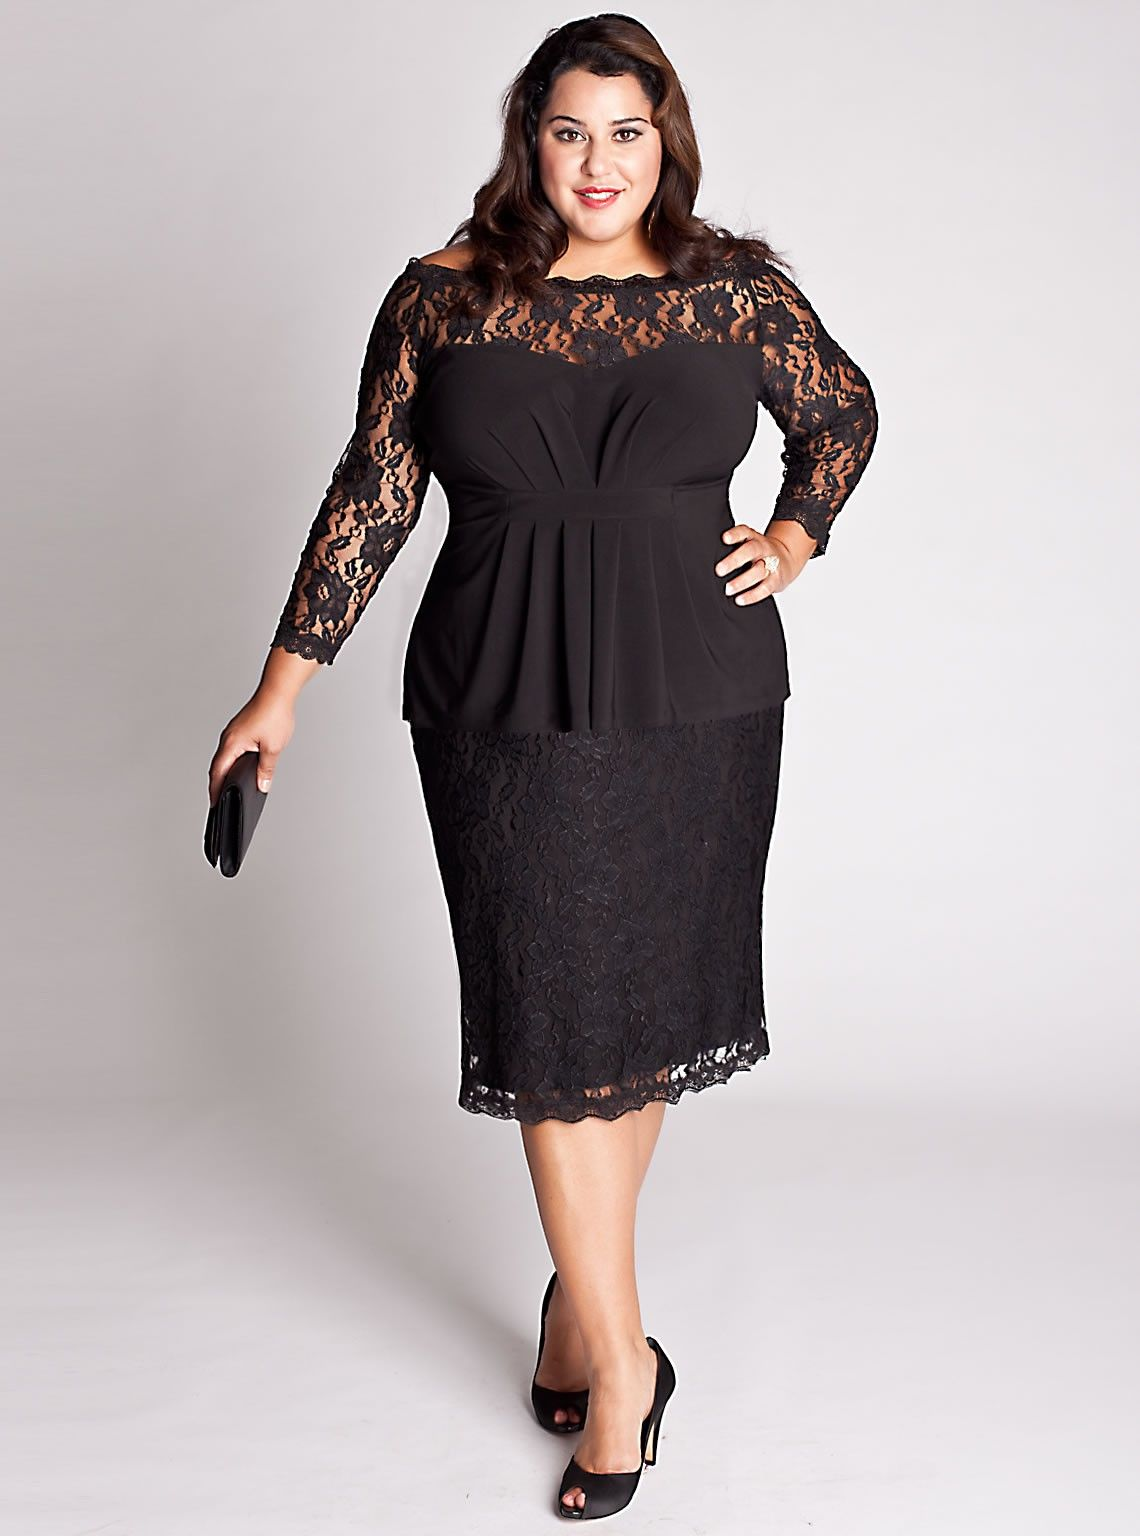 420a360ec5a juniors plus size clothing cheap online stores 2014-2015 04 -  plussize   curvy  fashion